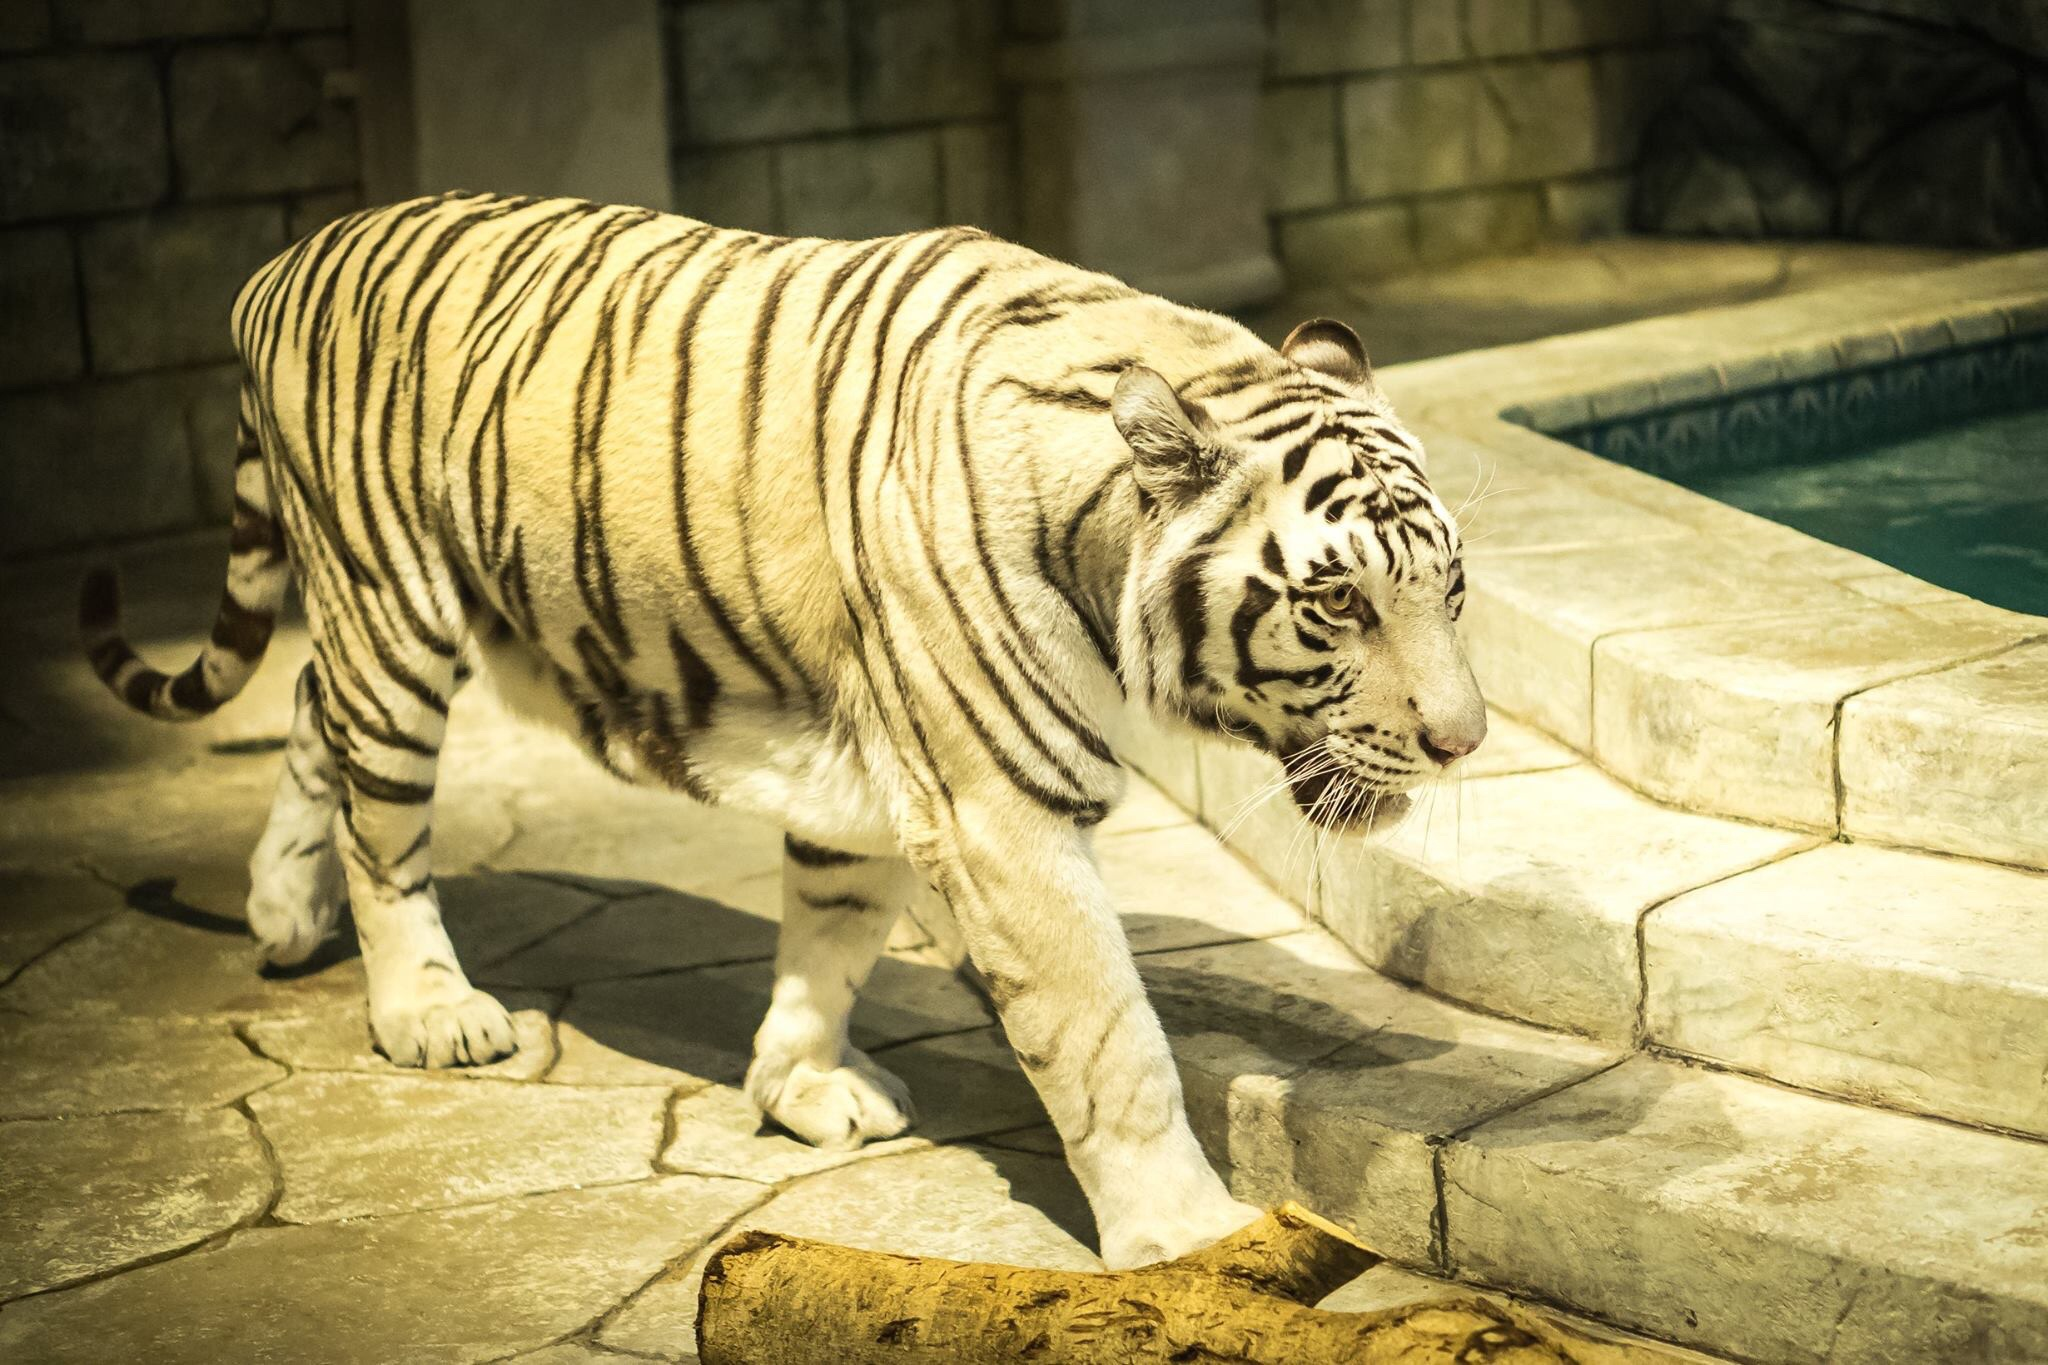 The White Tiger by Gerritt Tisdale